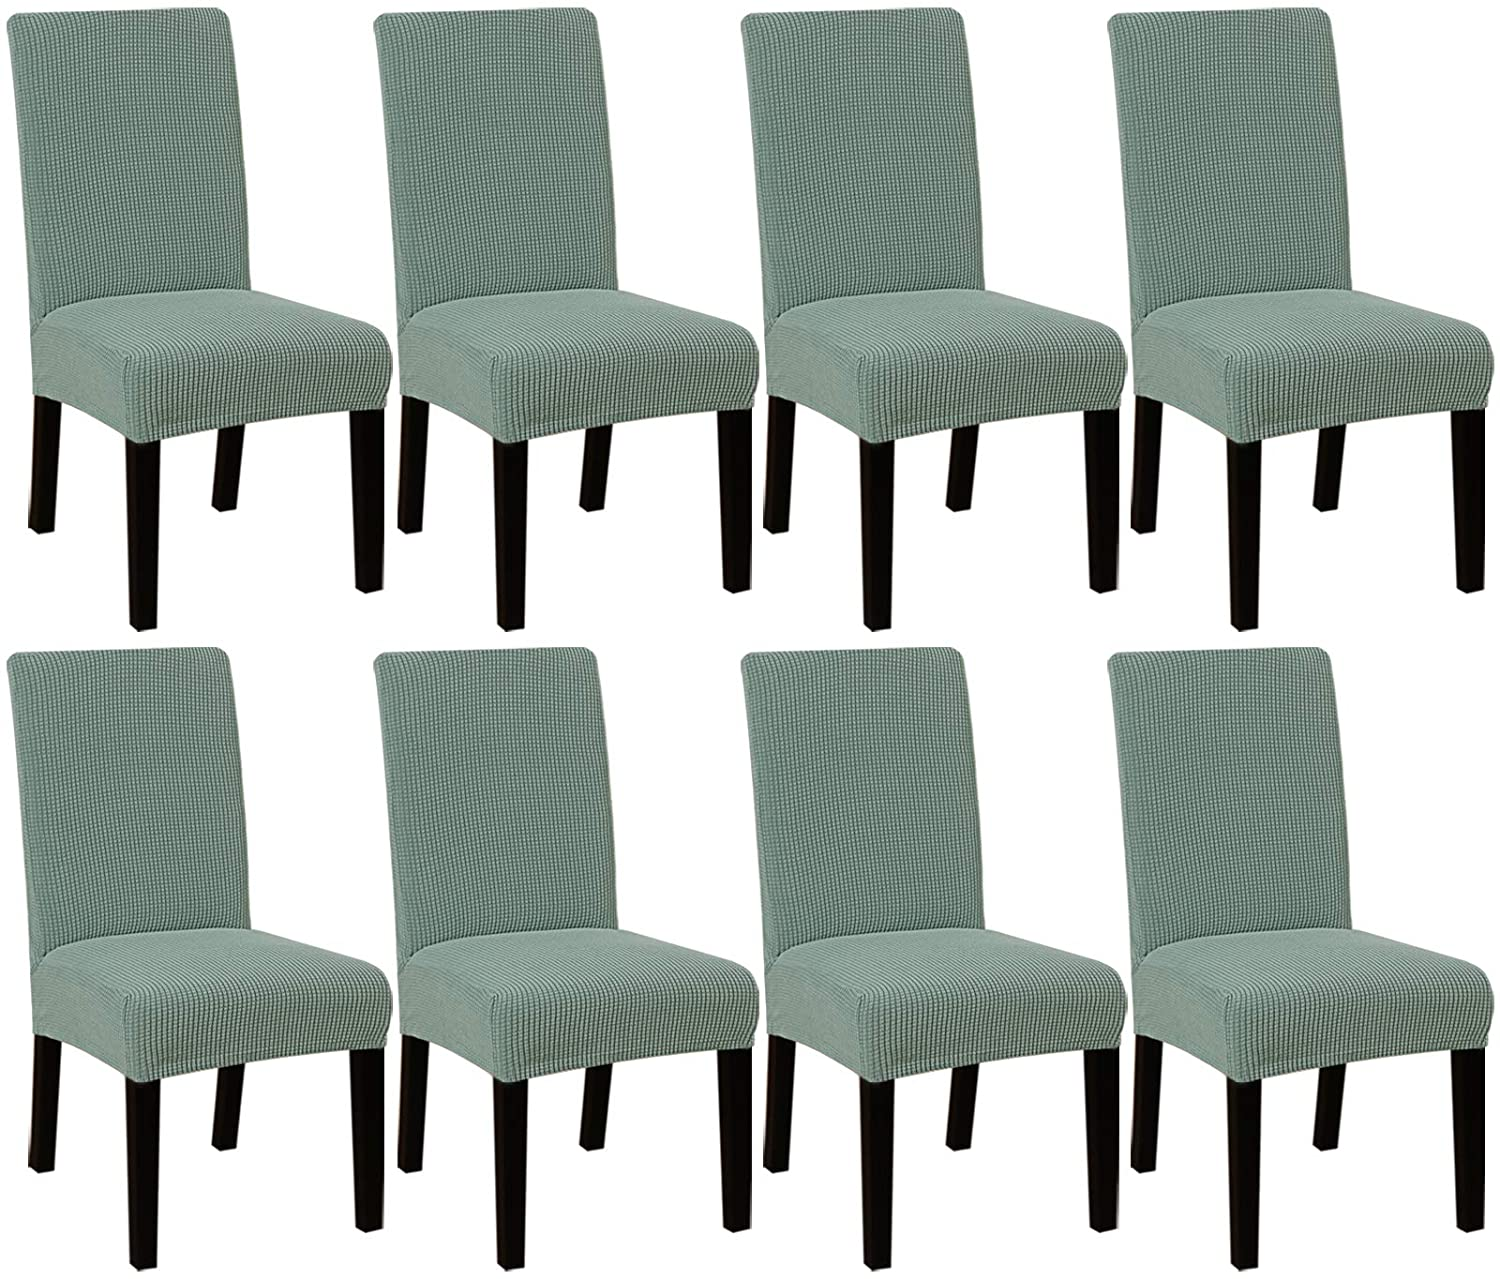 High Stretch Dining Chair Covers for Dining Room (Set of 8) Parson Chair Slipcovers for Wedding Hotel Ceremony | Easy Fitting Removable Dining Chair Covers Feature Textured Jacquard Fabric - Sage